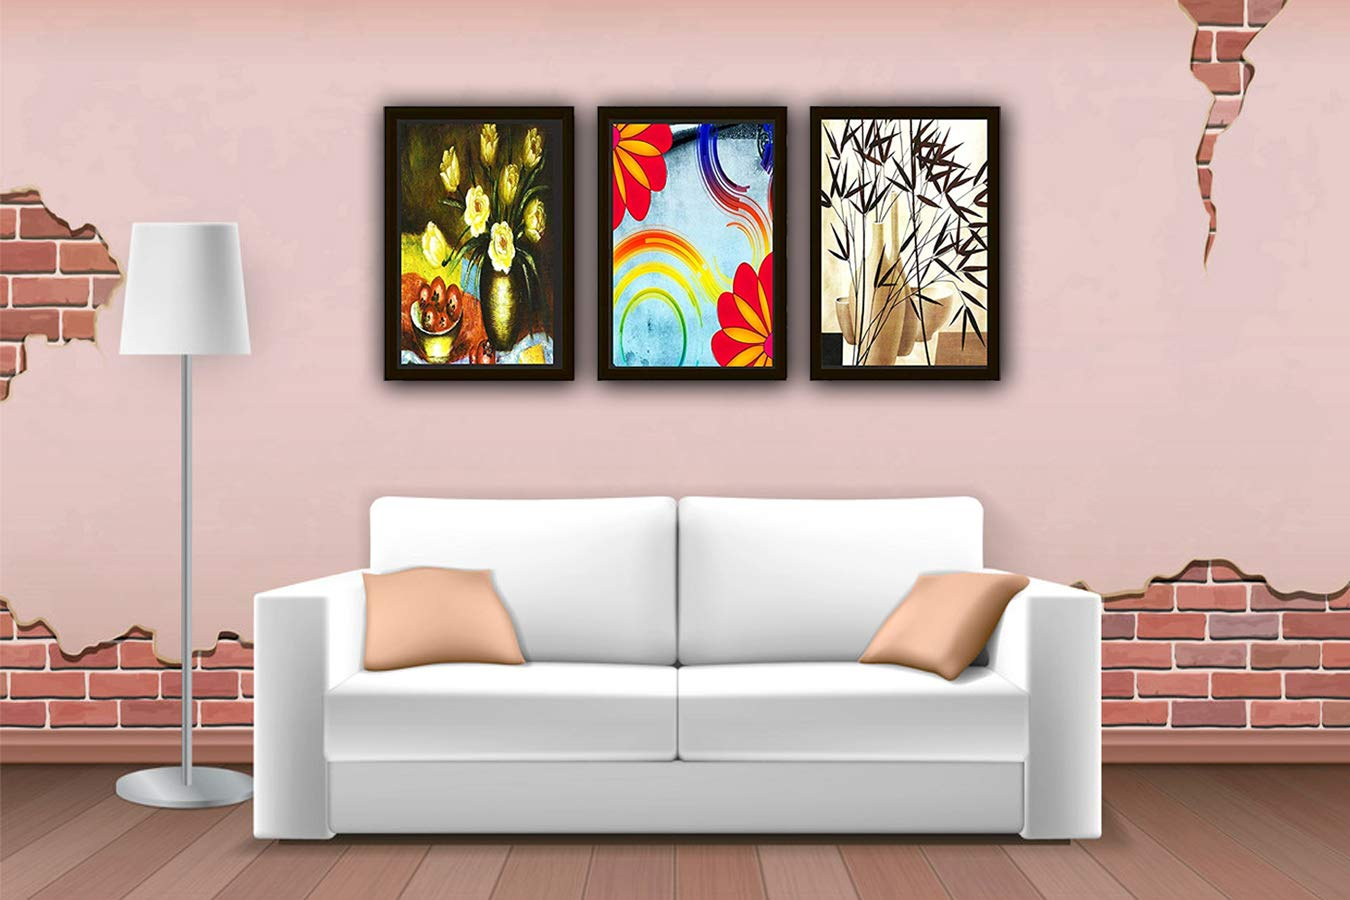 Go Hooked Digital Printed Wall Art Frame Painting Stylish Wood Frame Wall Decor Painting For For Living Room Bedroom Kitchen Office Hotel Dining Room Set Of 3 8x12 Inch Amazon In Home